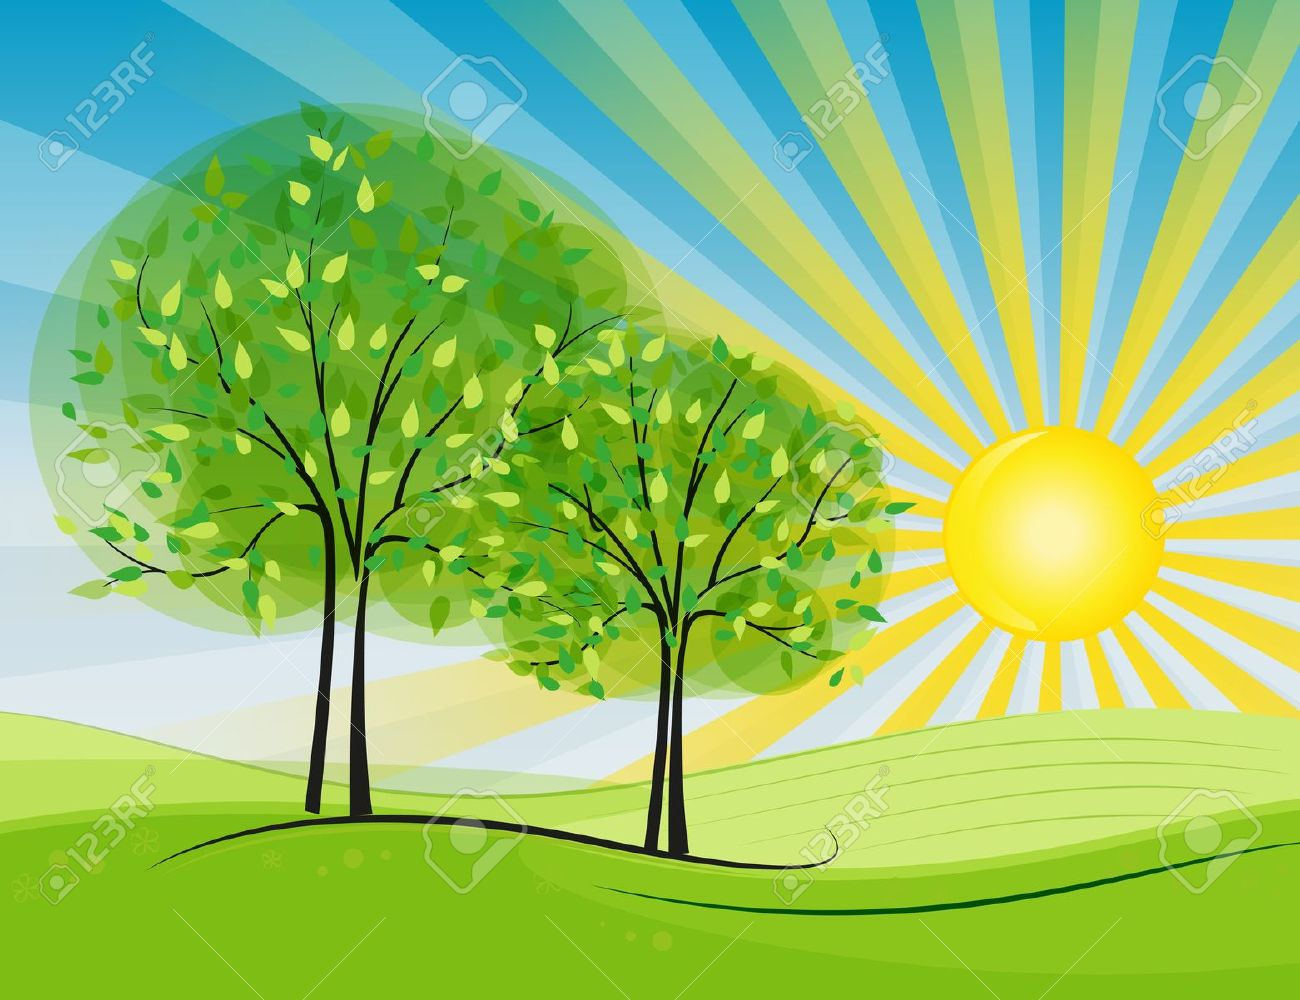 Sunny day clipart.